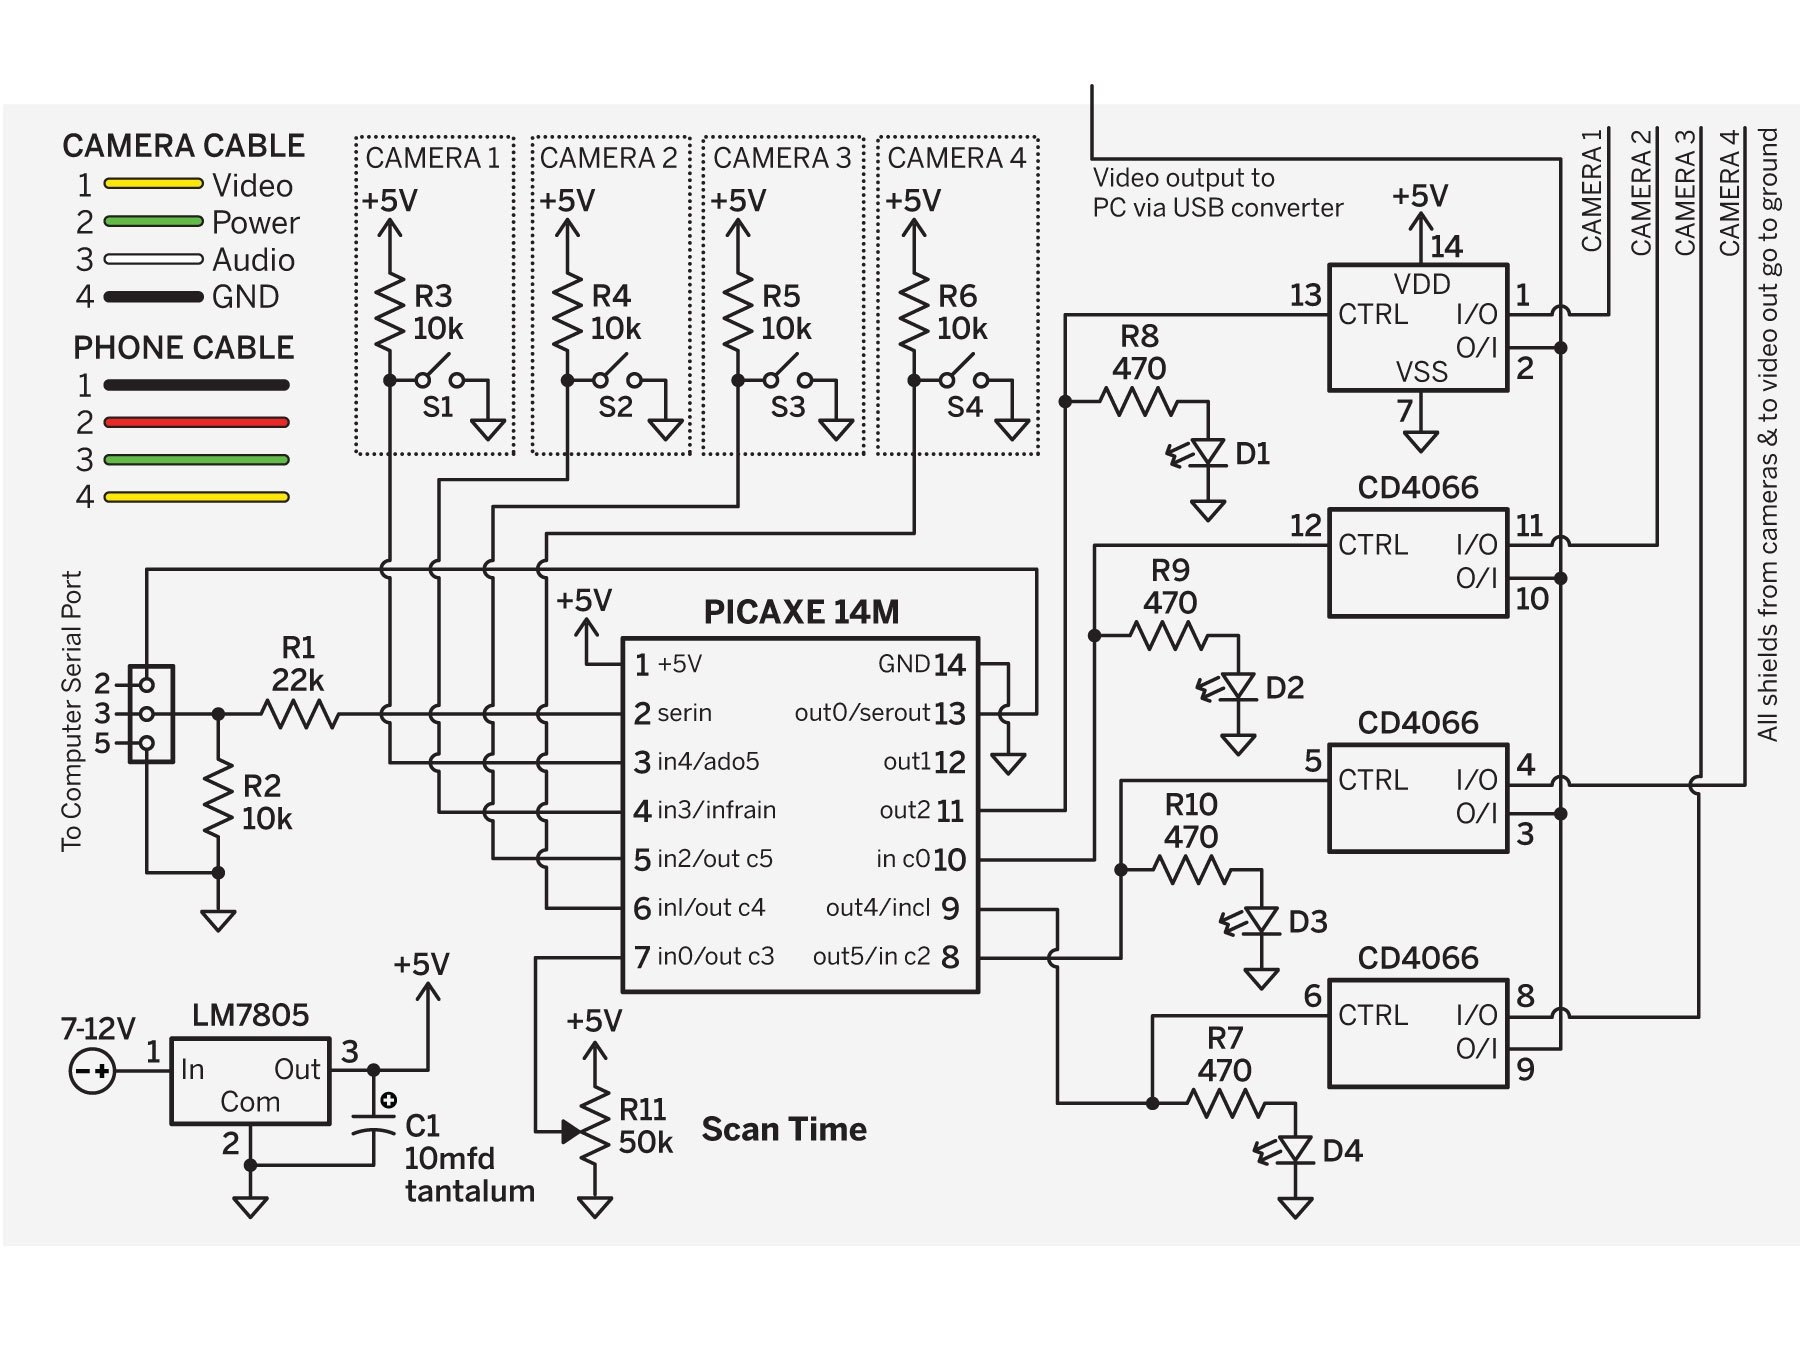 hight resolution of bunker hill security camera wiring diagram wiring diagram for home security camera new wiring diagram